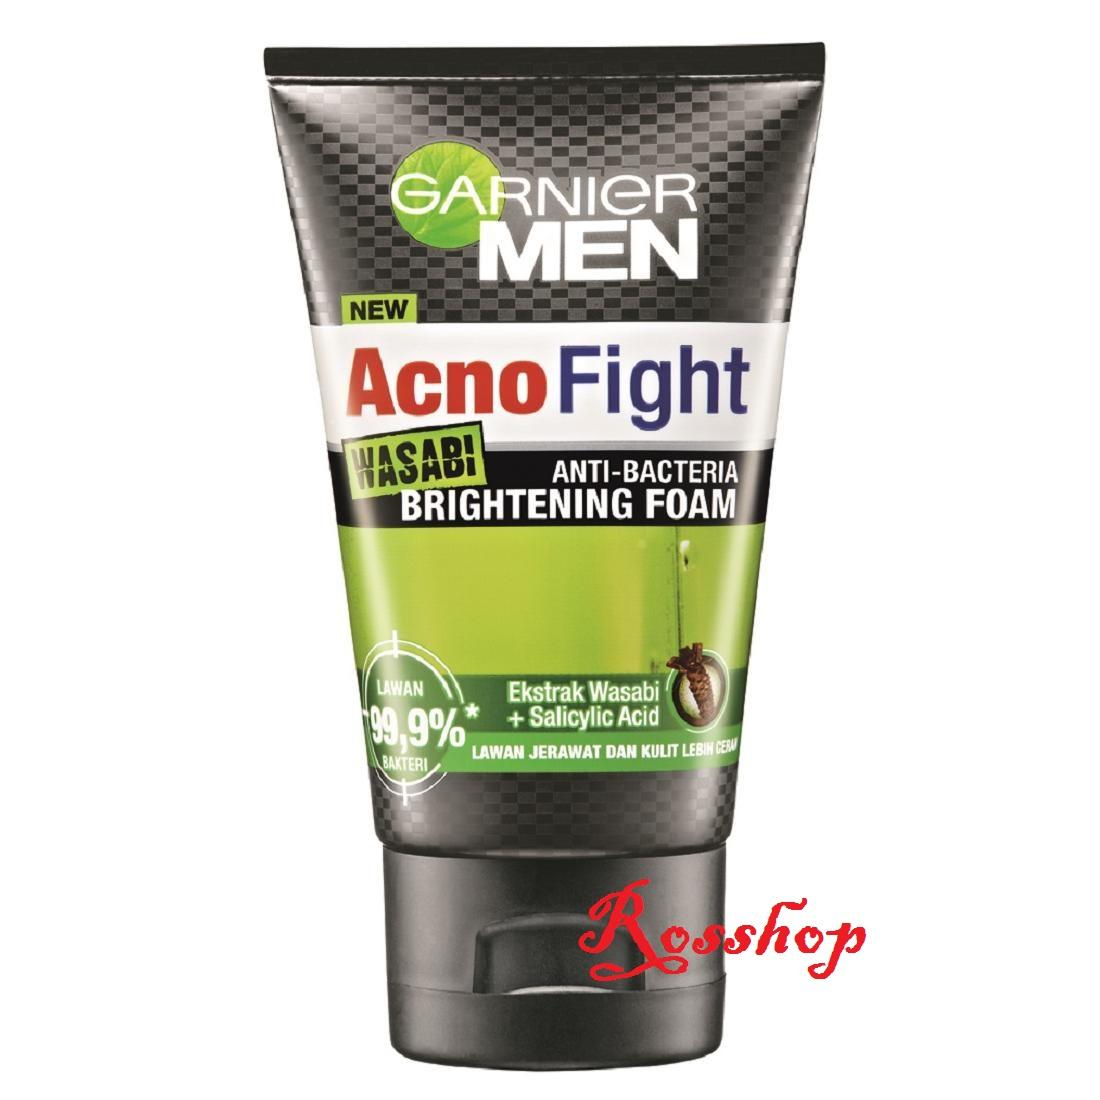 Buy Sell Cheapest Wasabi Np Fw Best Quality Product Deals Power Battery Fw50 For Sony Garnier Men Acno Fight Foam 50ml